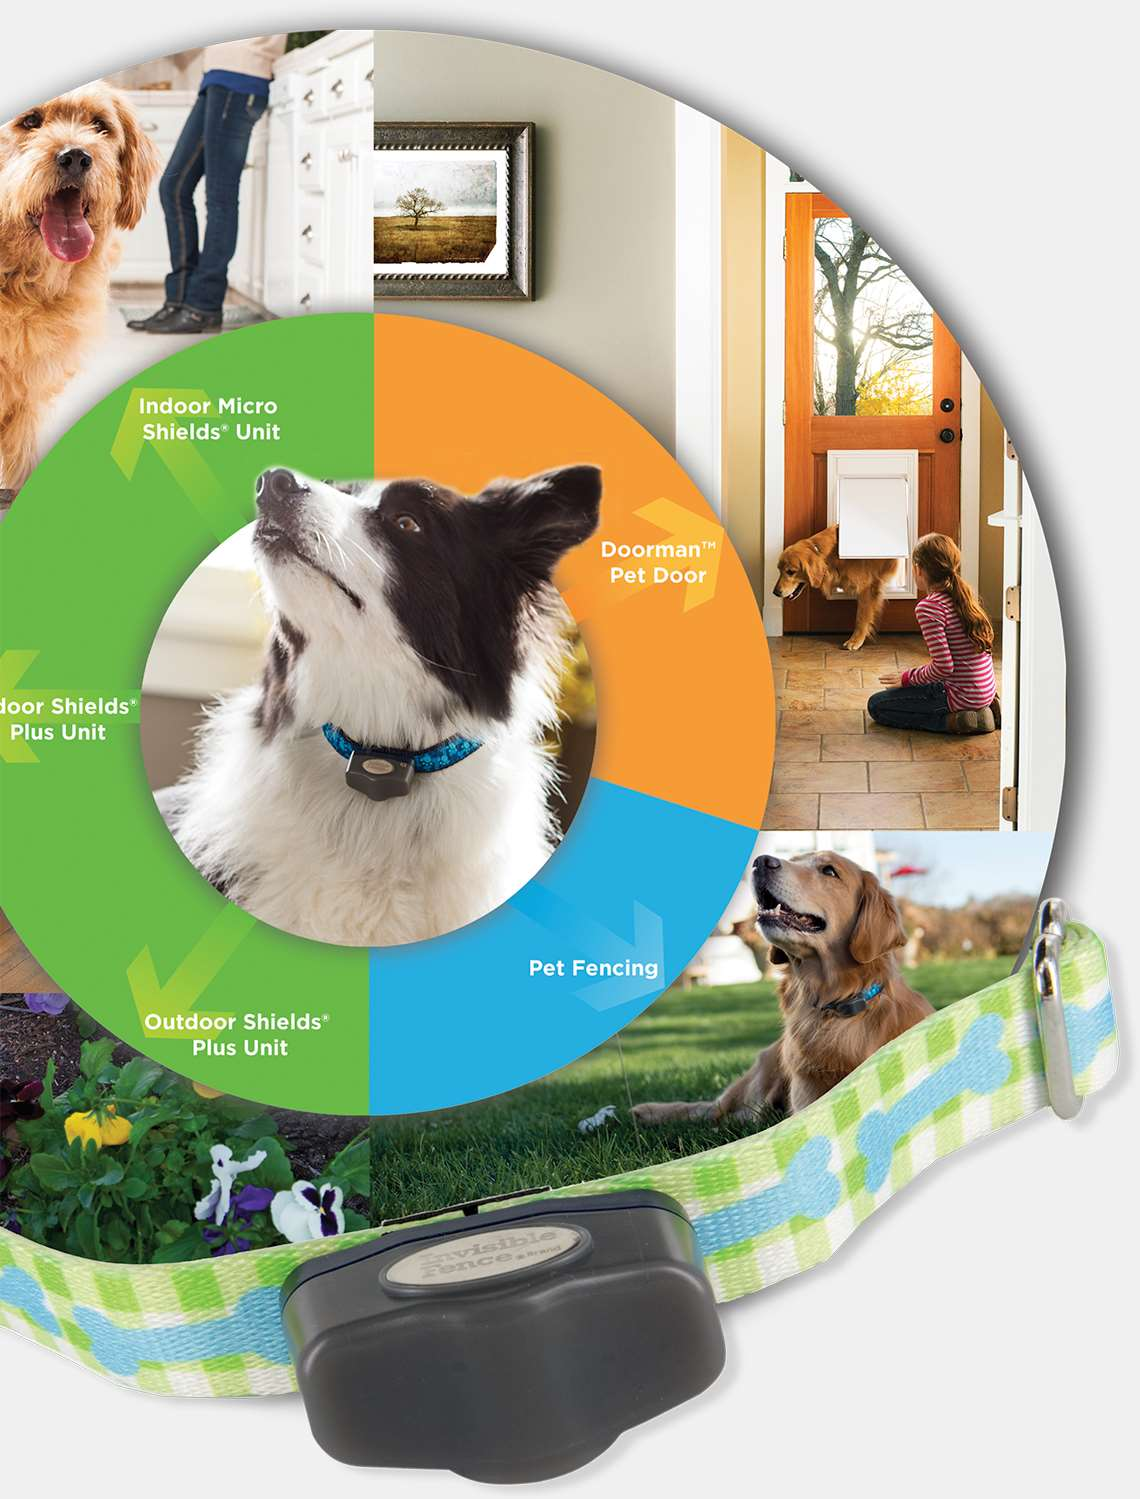 Complete Home Pet Care.